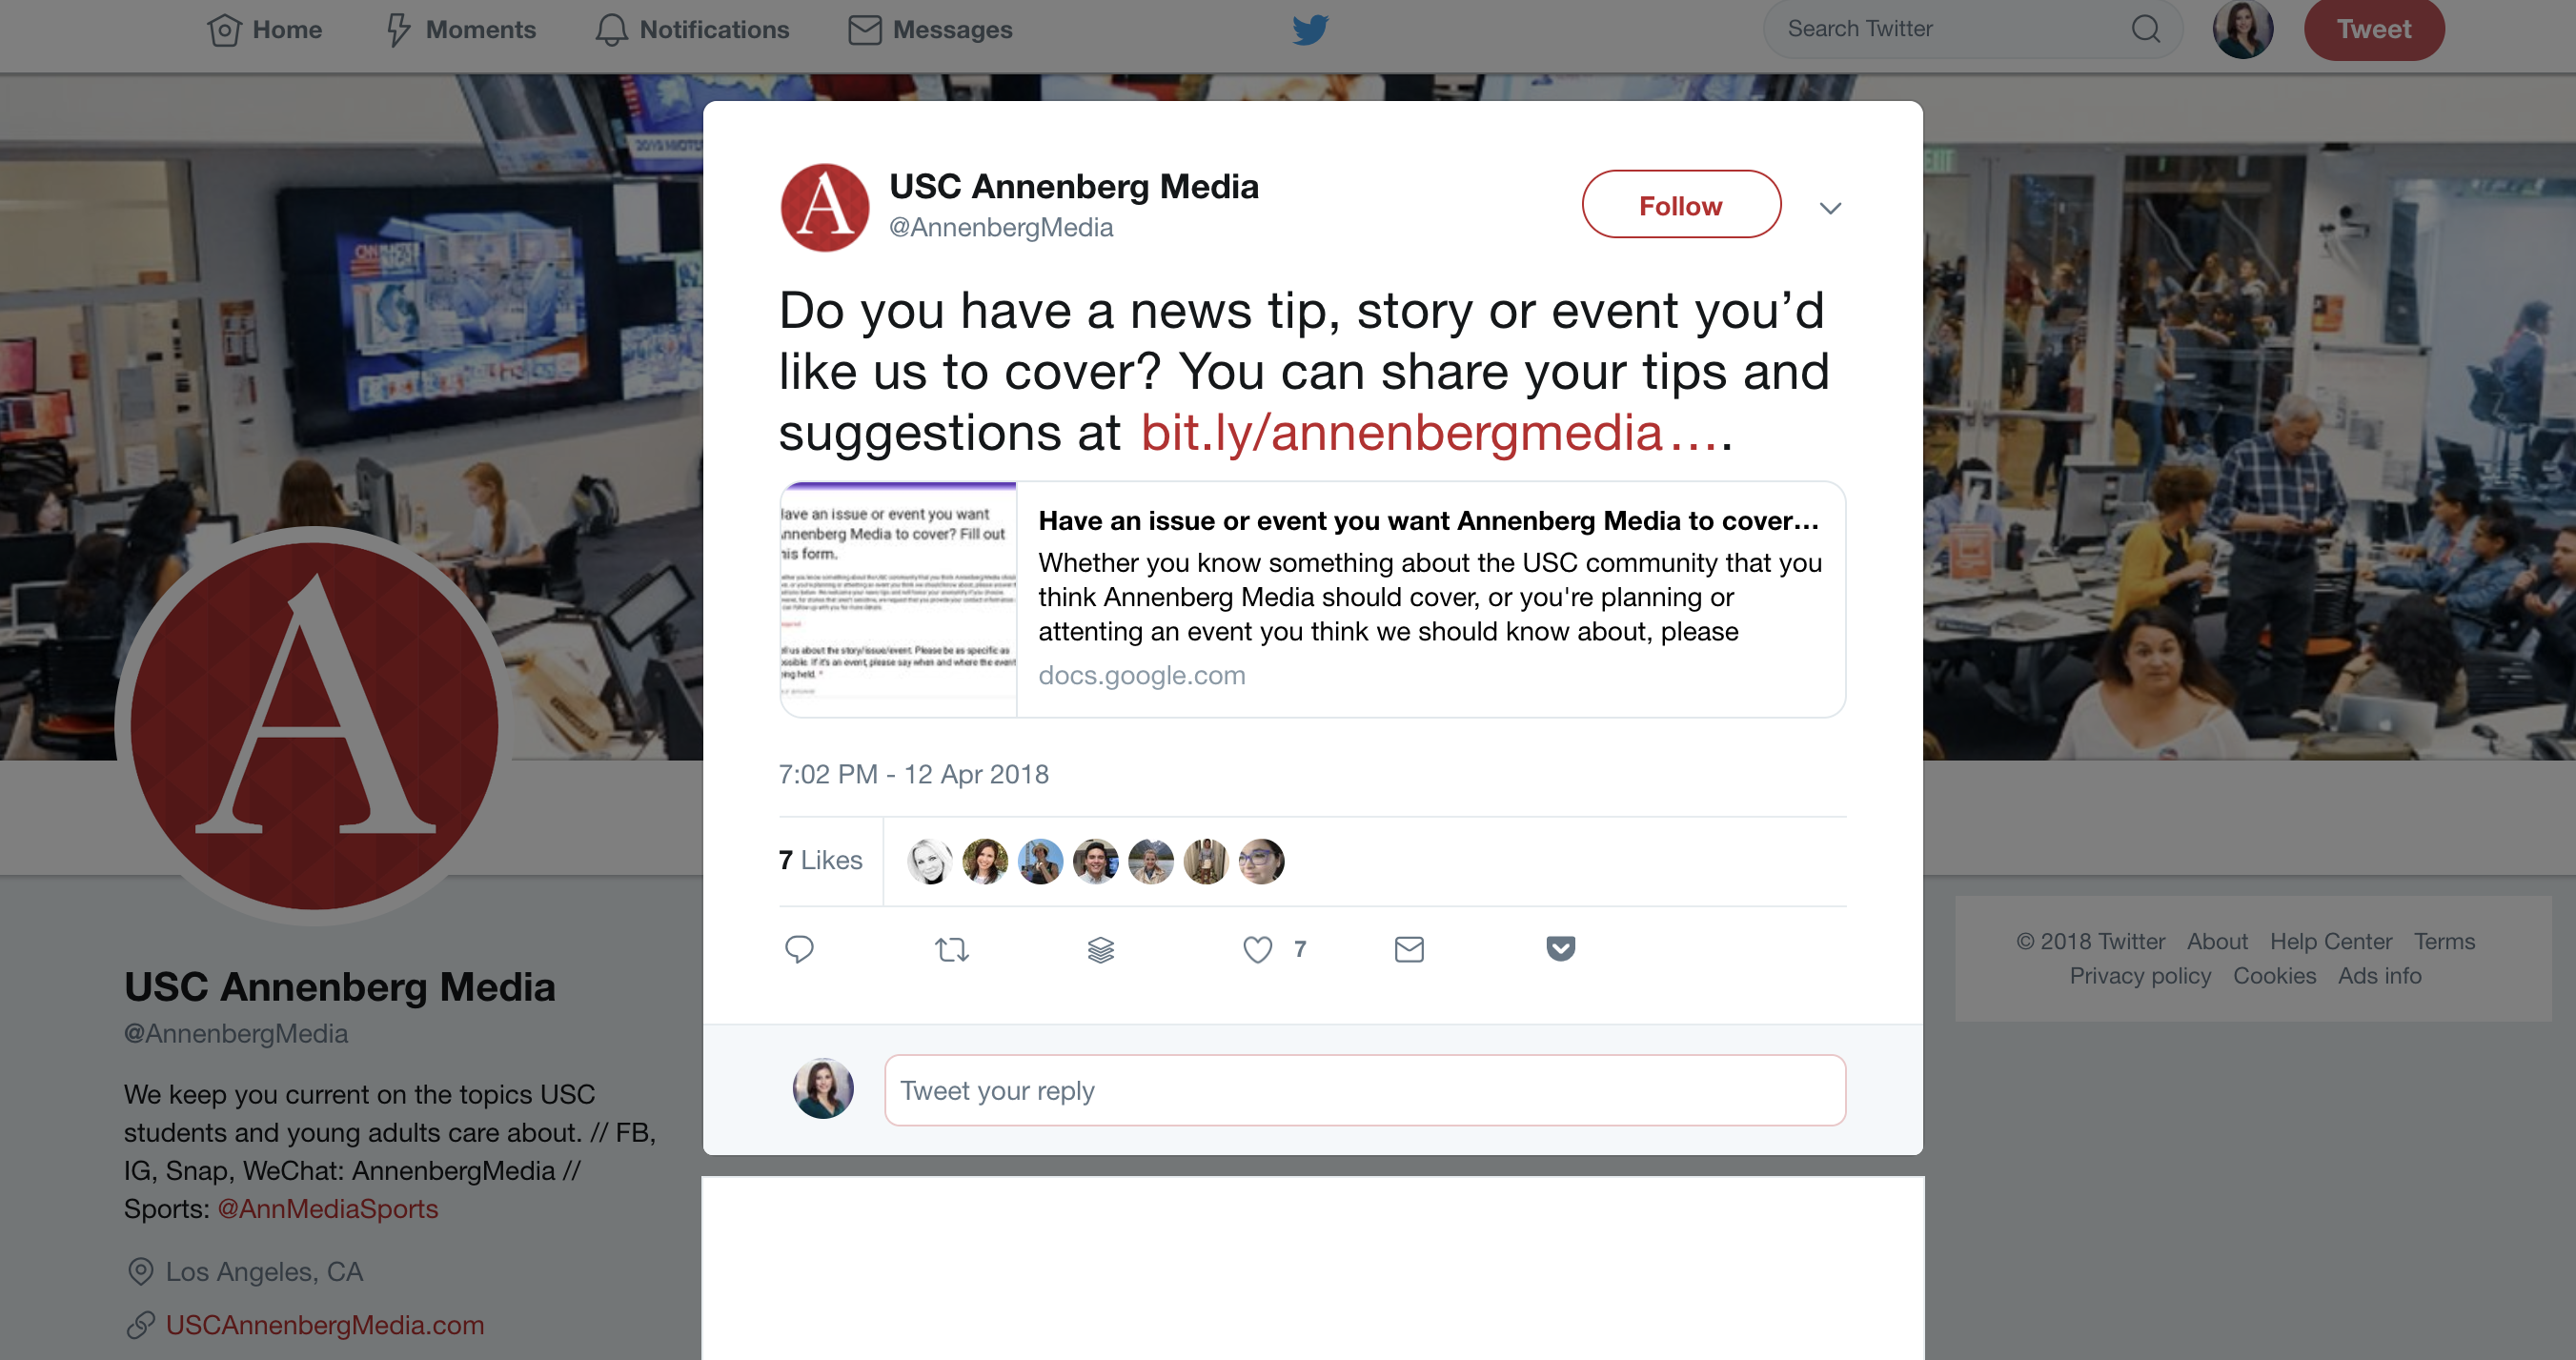 Tweet from Annenberg Media, reading: Do you have a news tip, story or event you'd like us to cover? You can share your tips and suggestions at http://bit.ly/annenbergmedianewstip ...